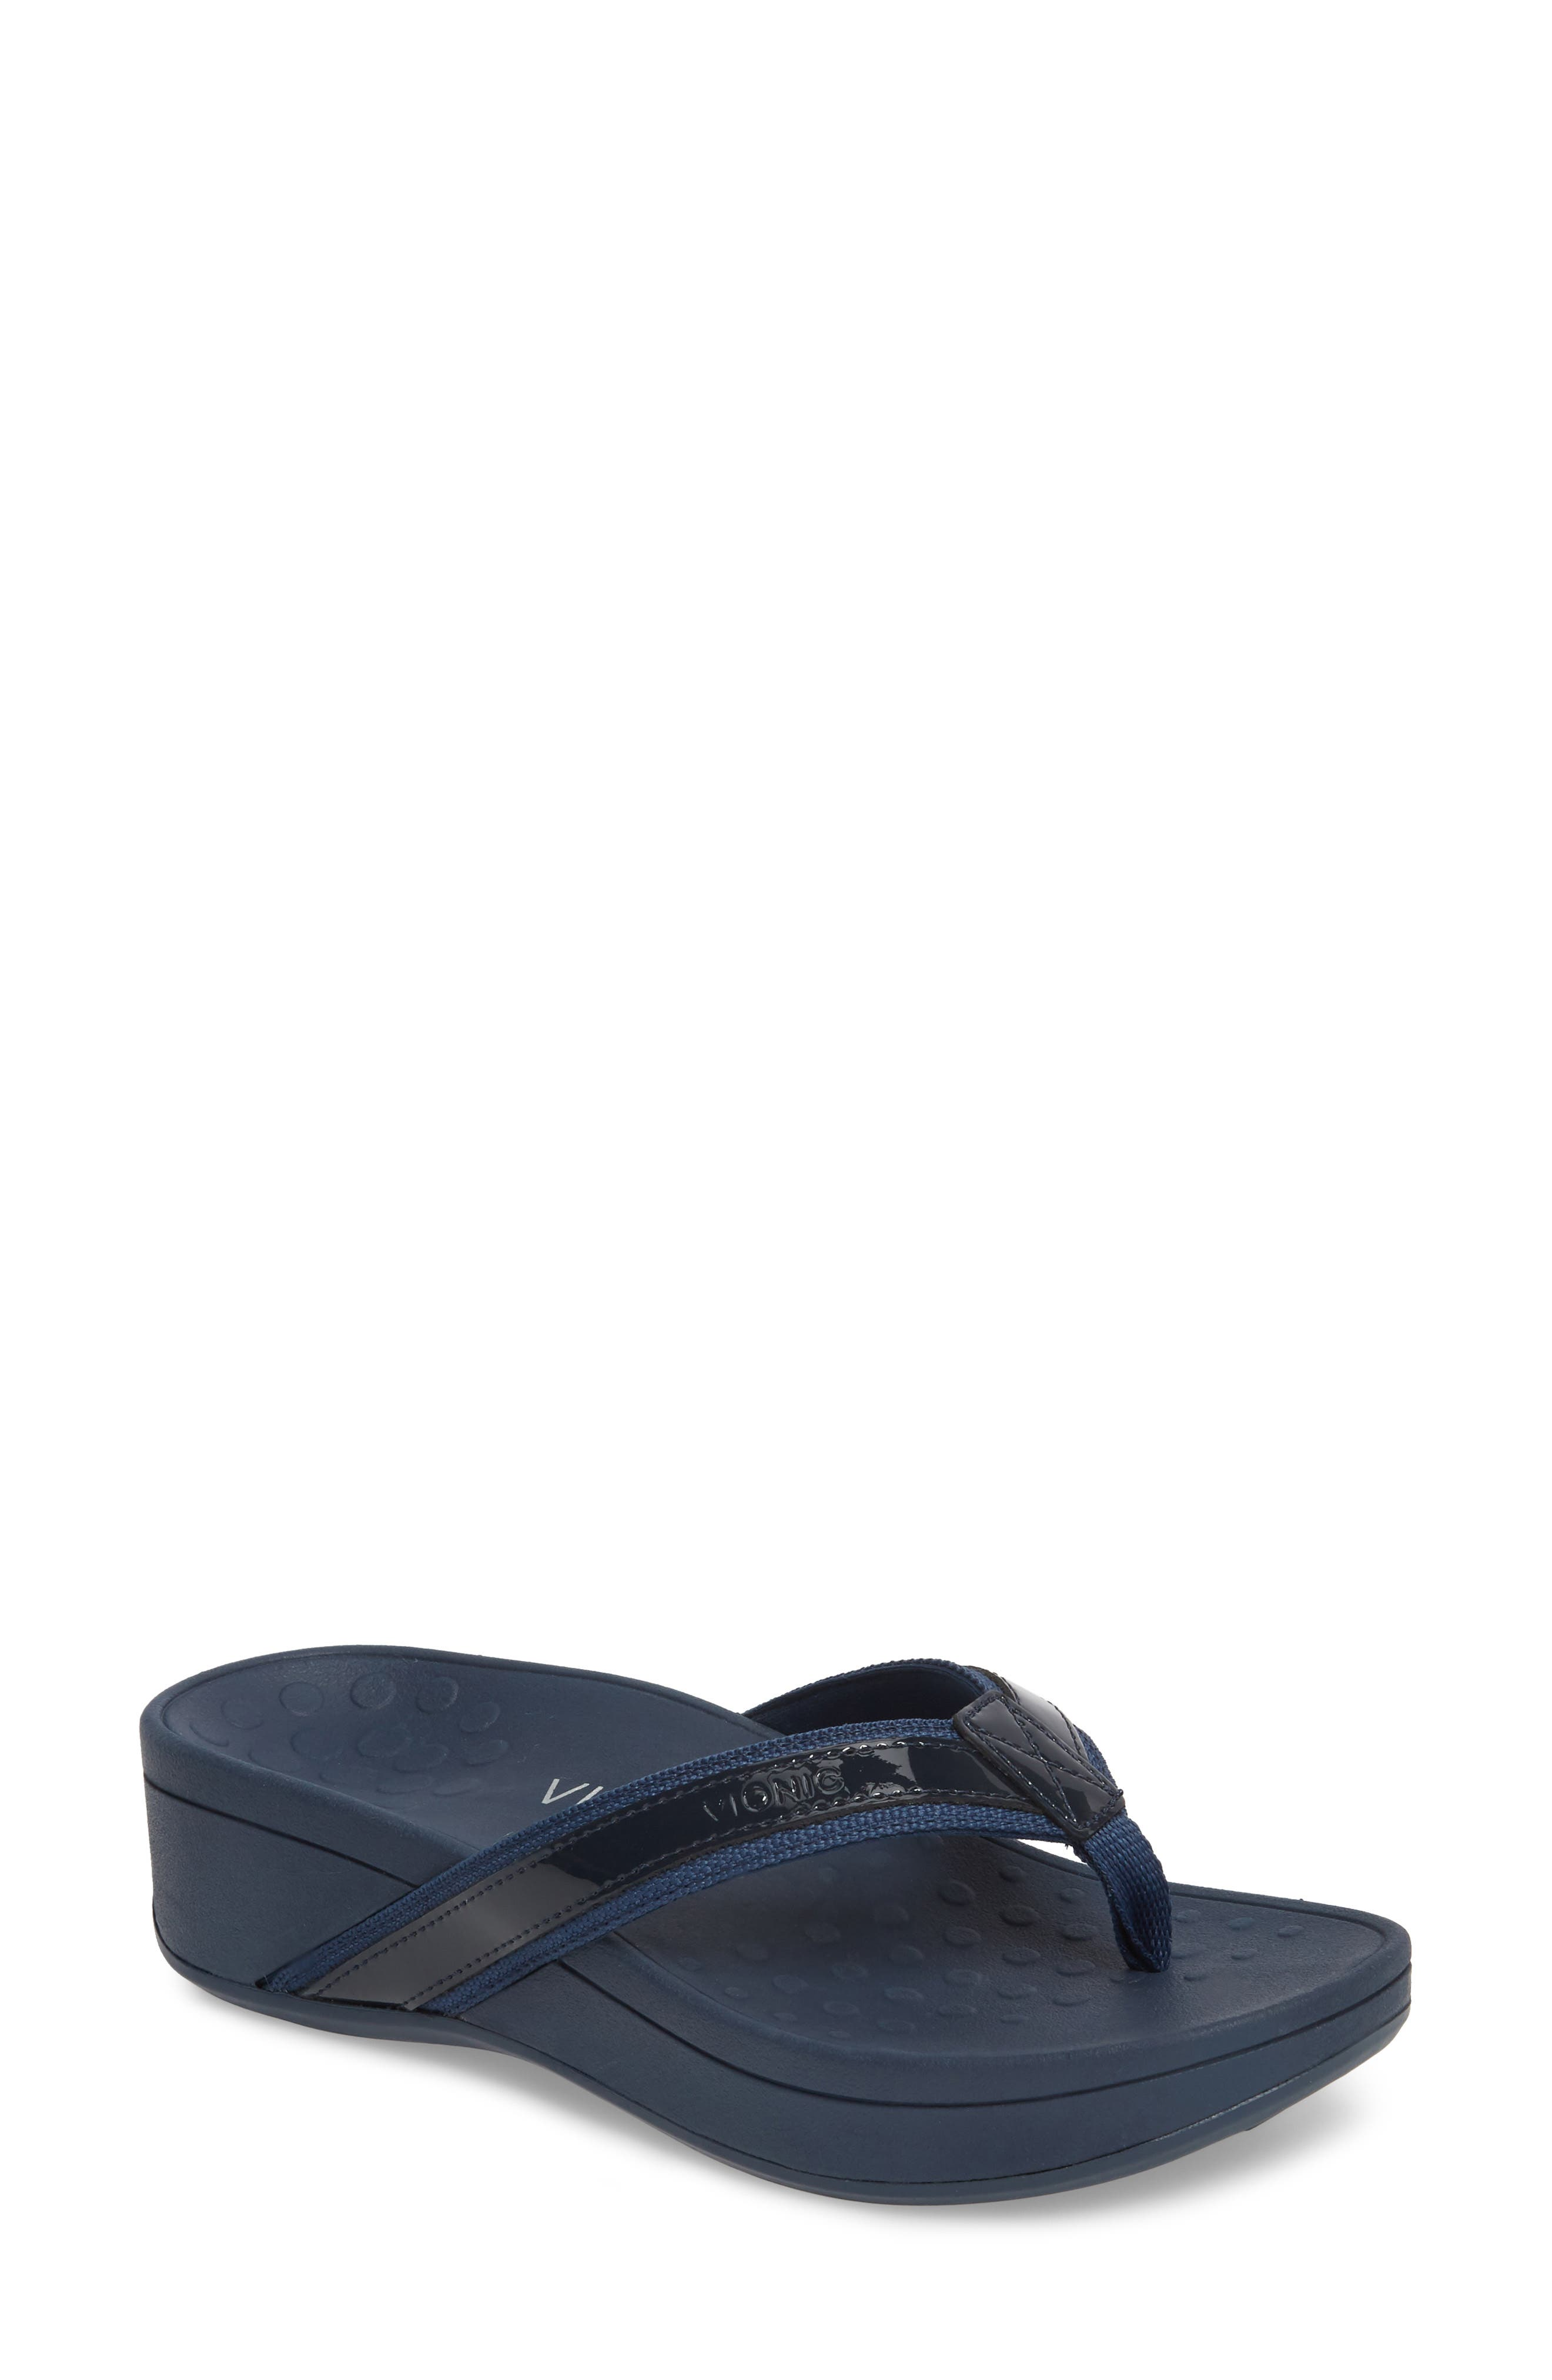 High Tide Wedge Flip Flop, Main, color, NAVY TEXTILE LEATHER